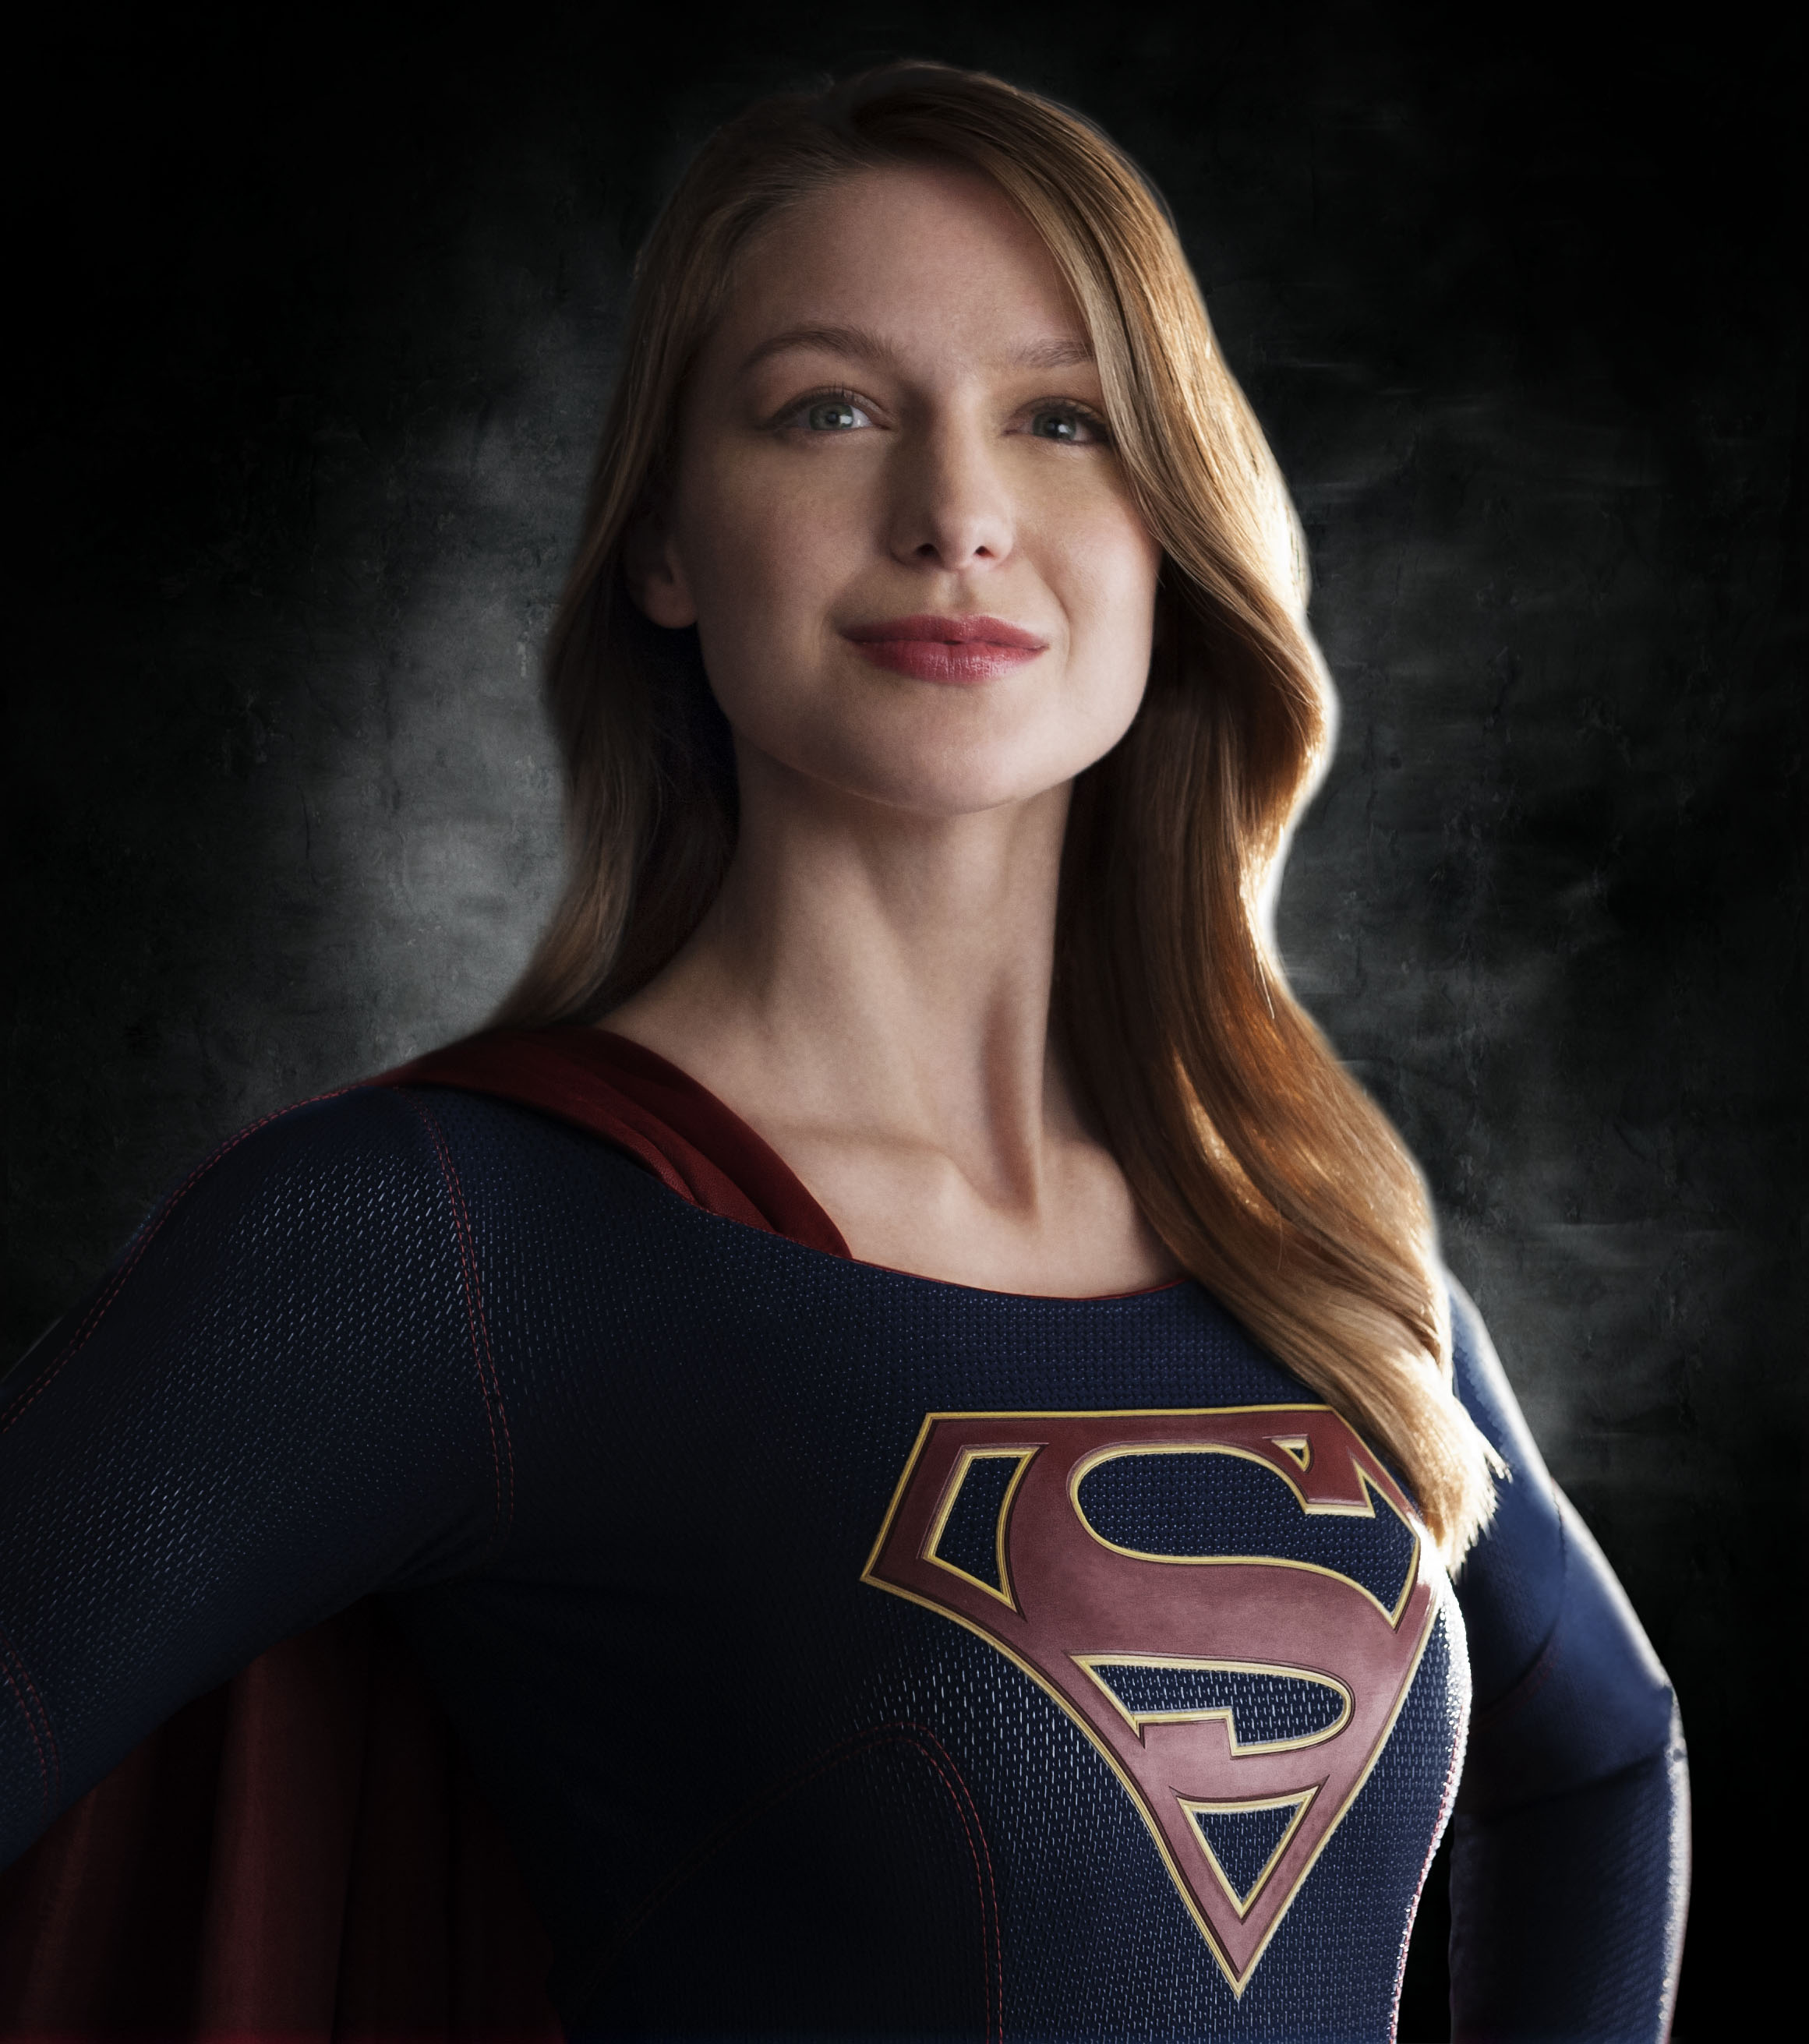 Super Girl (TV series)